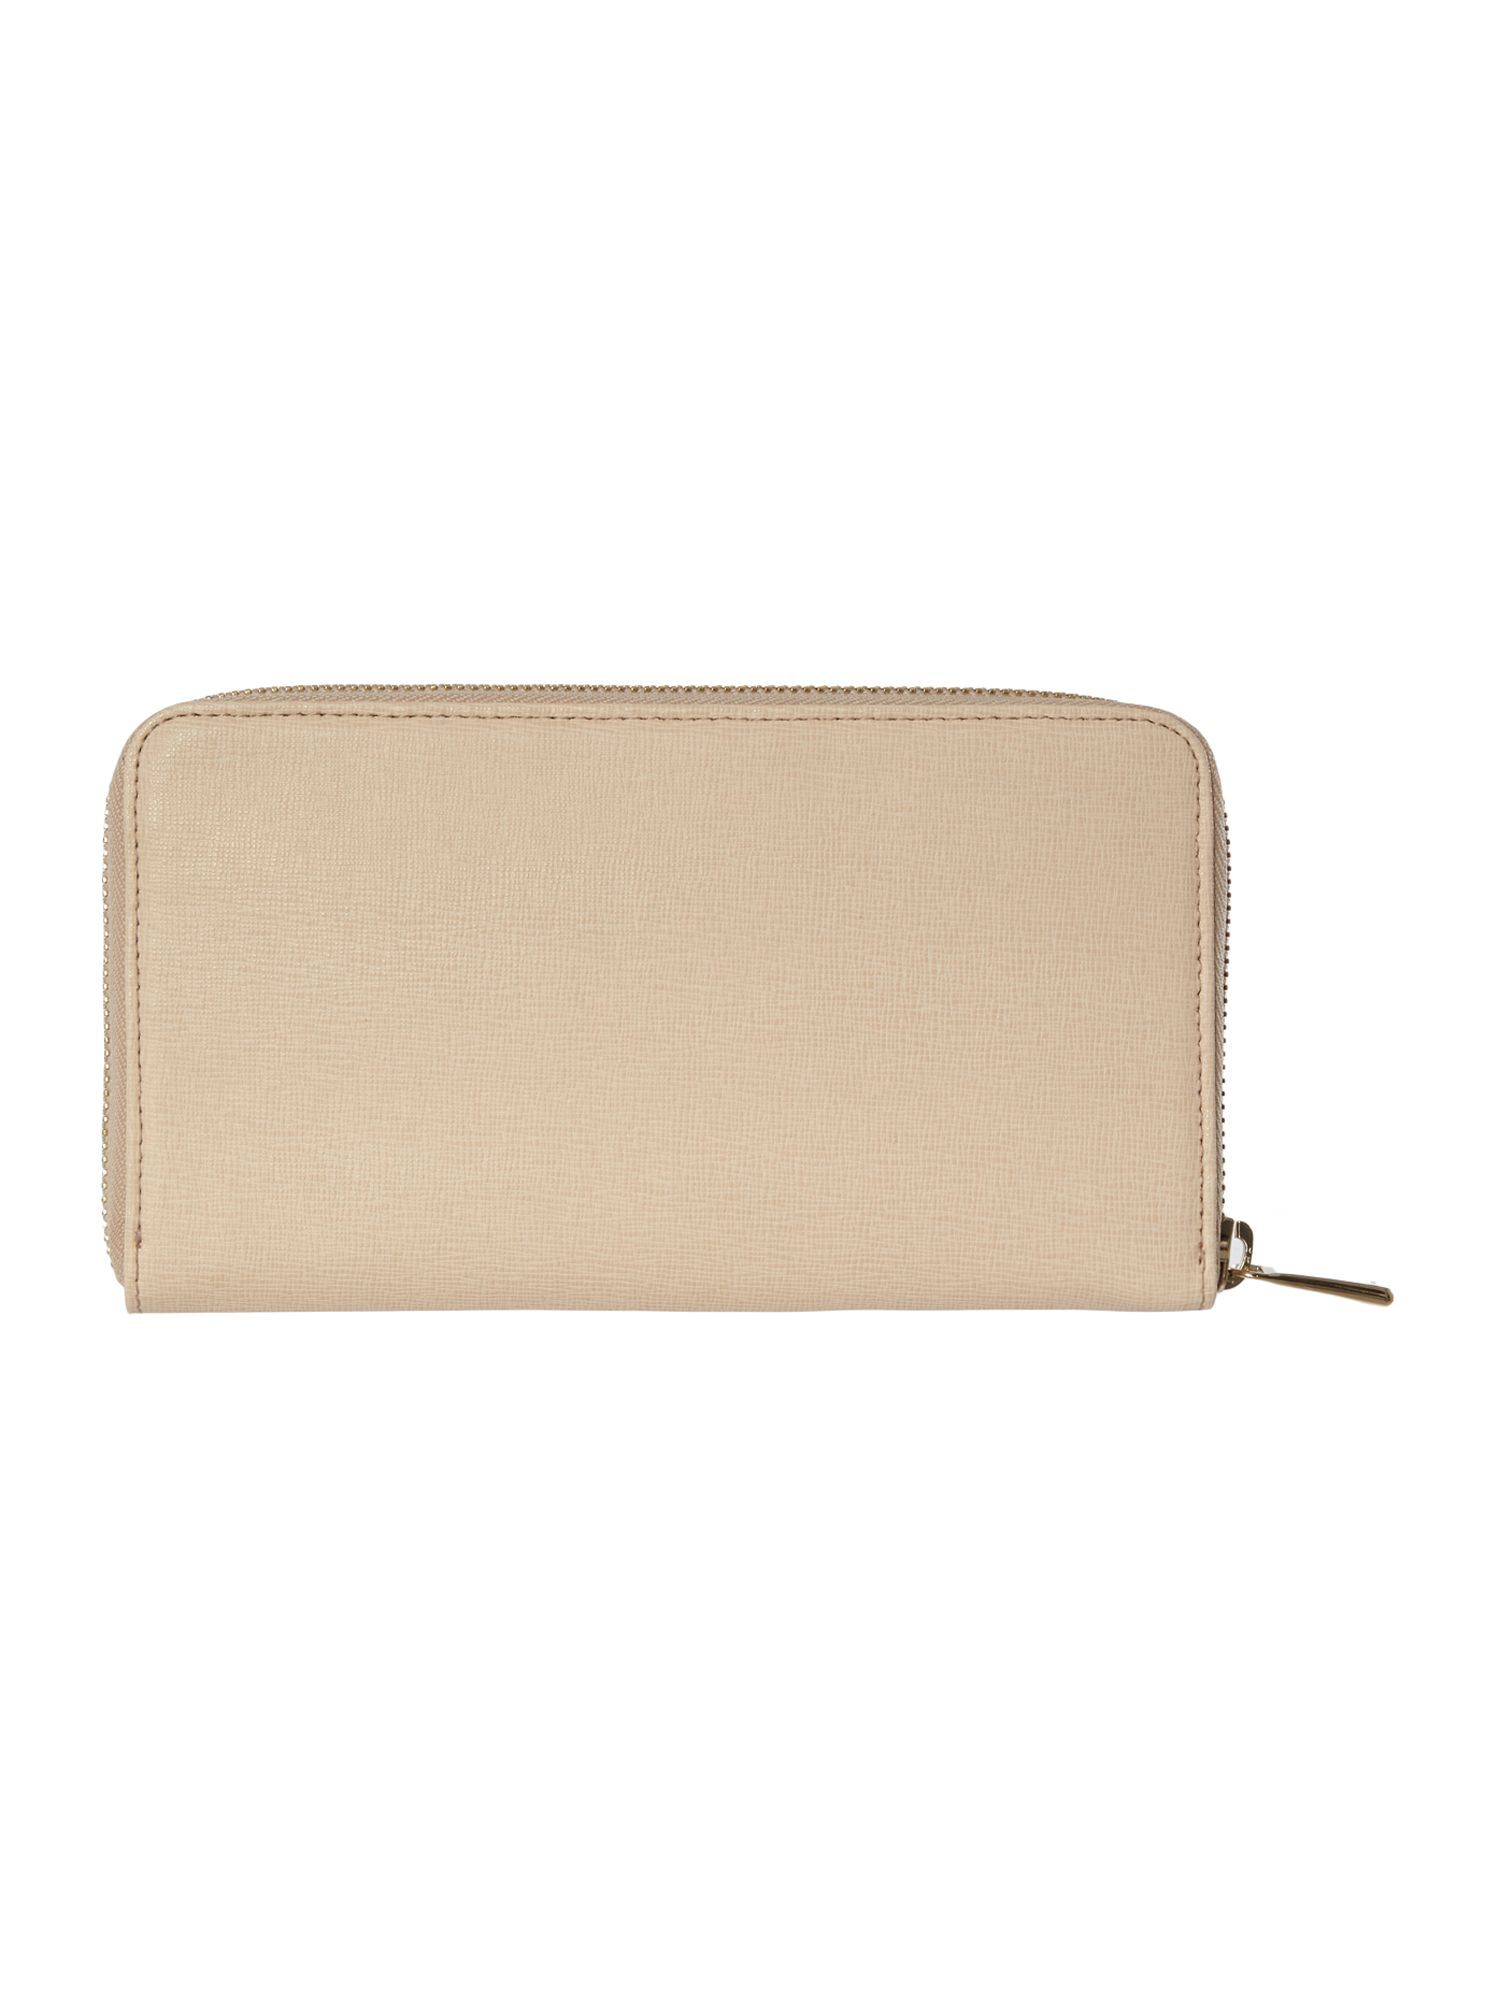 Babylon neutral large ziparound purse